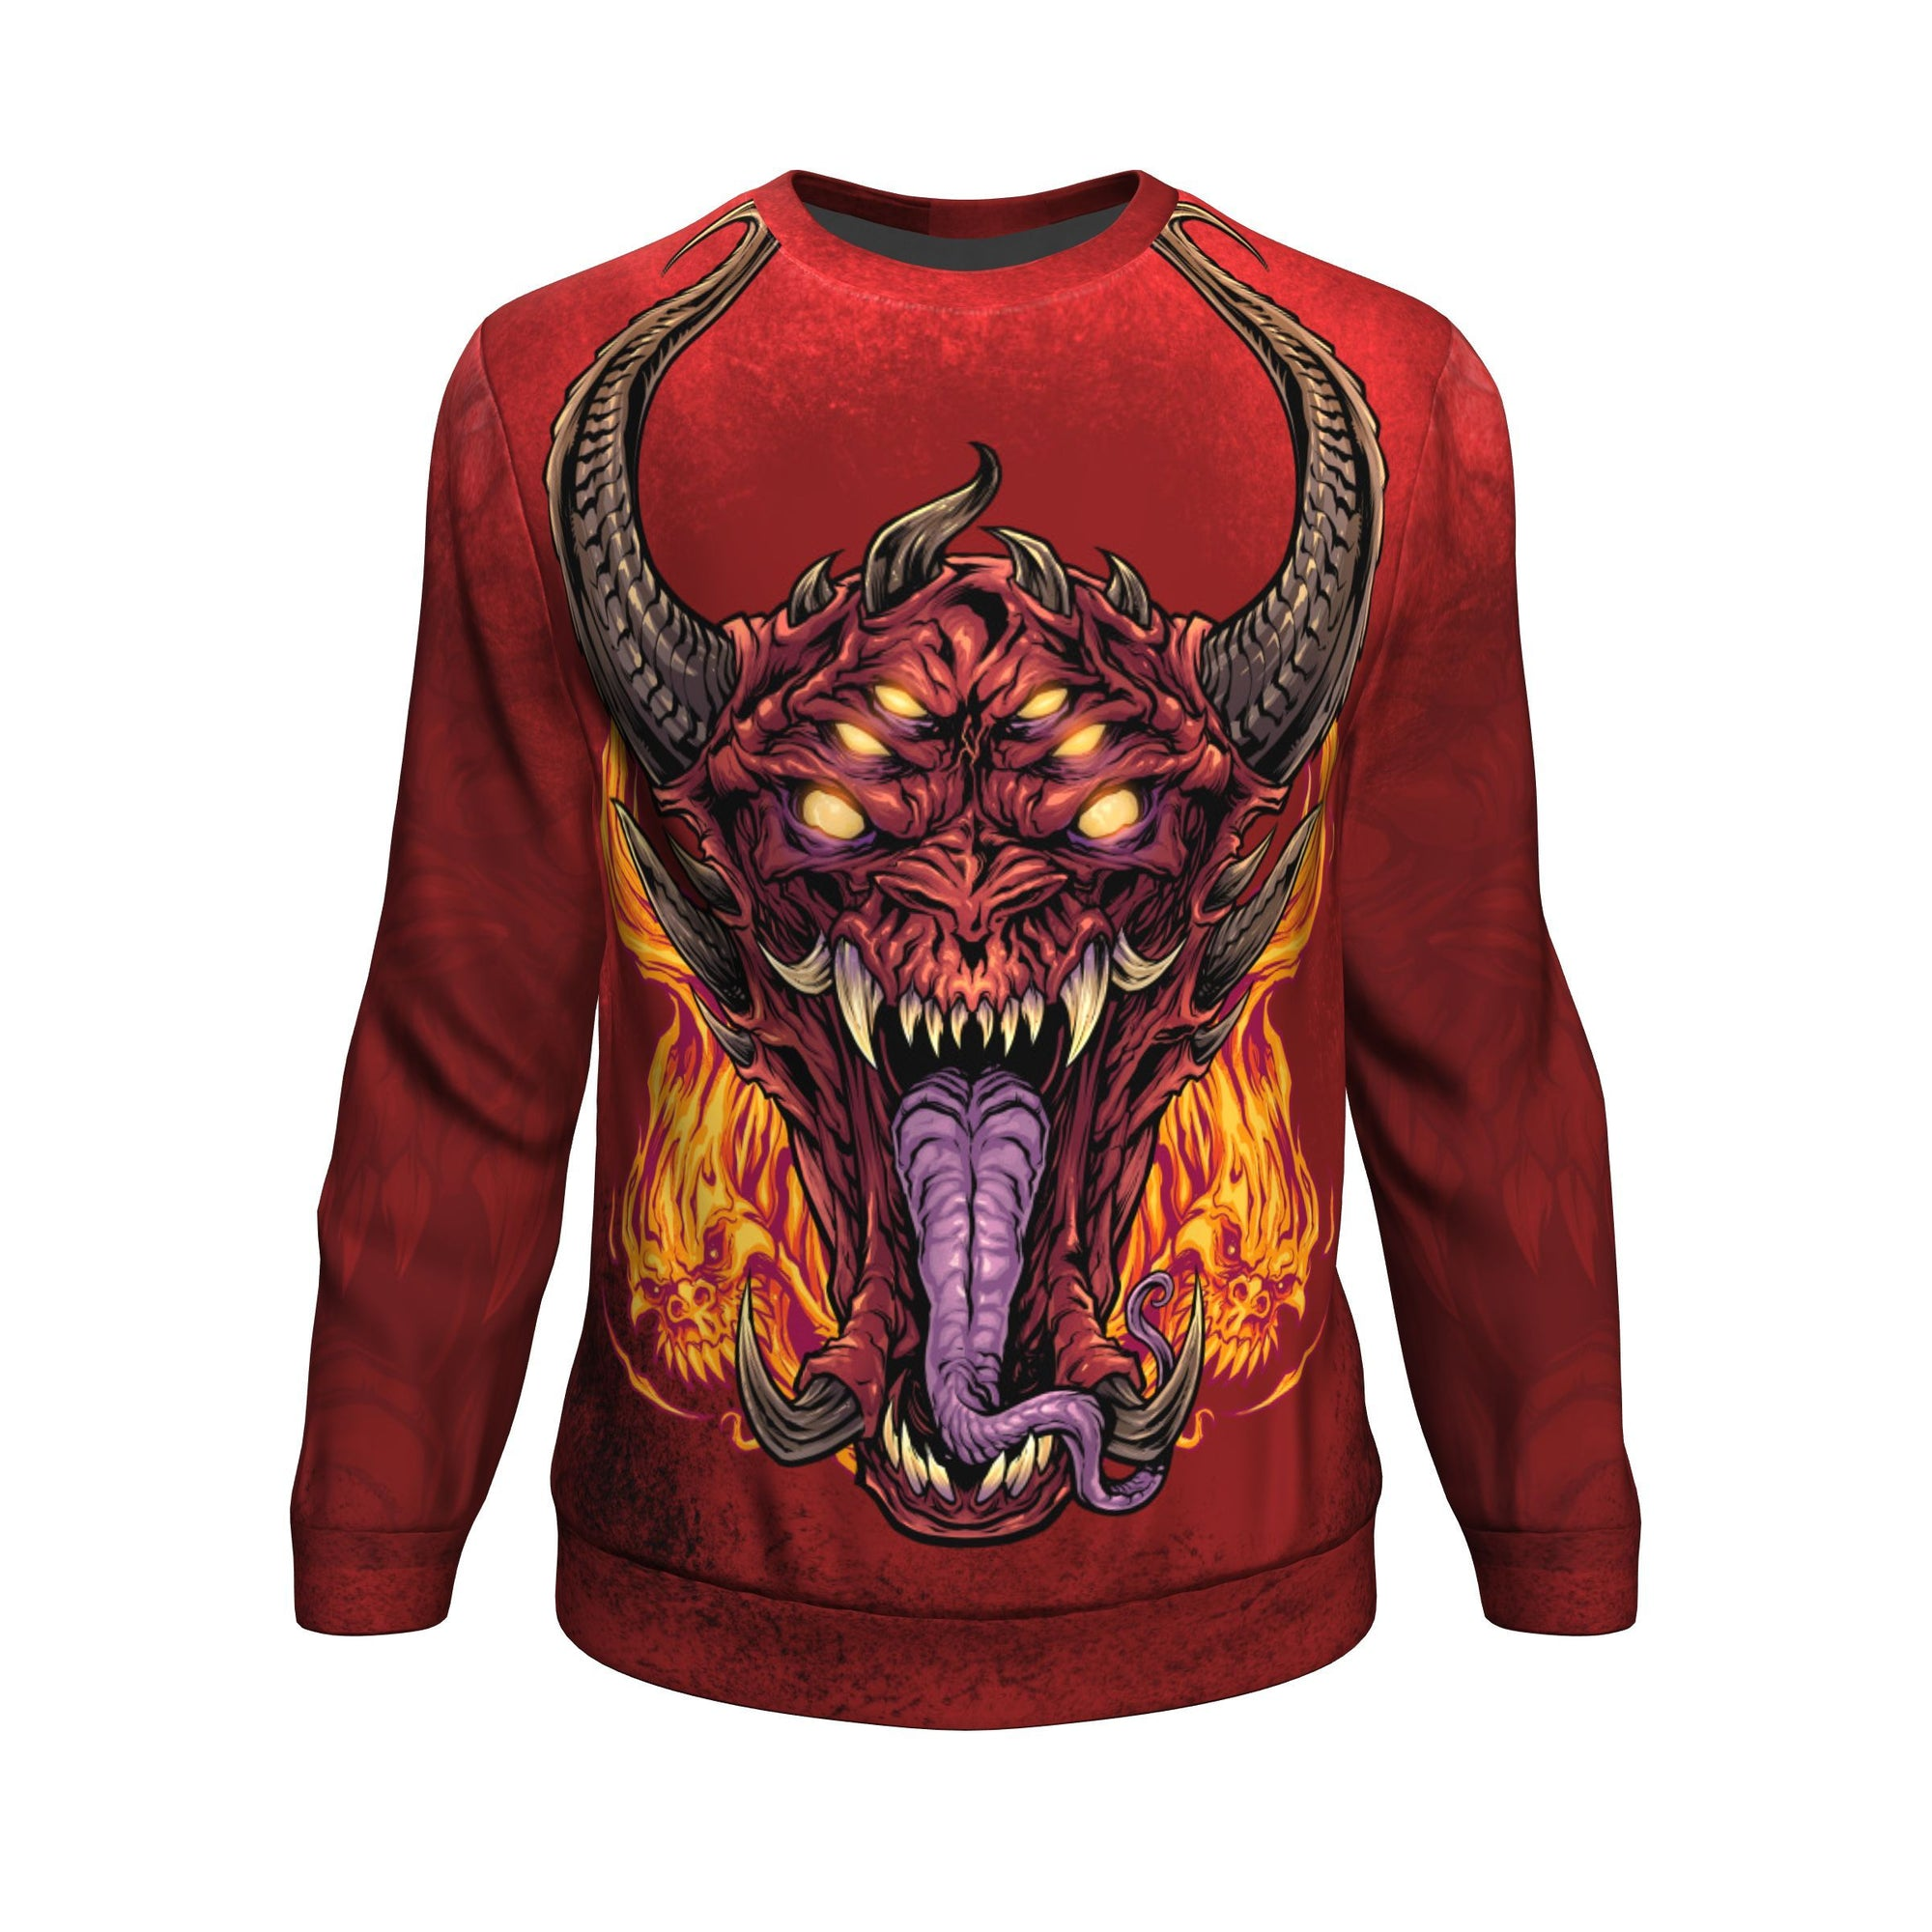 City Of Demons Sweatshirt